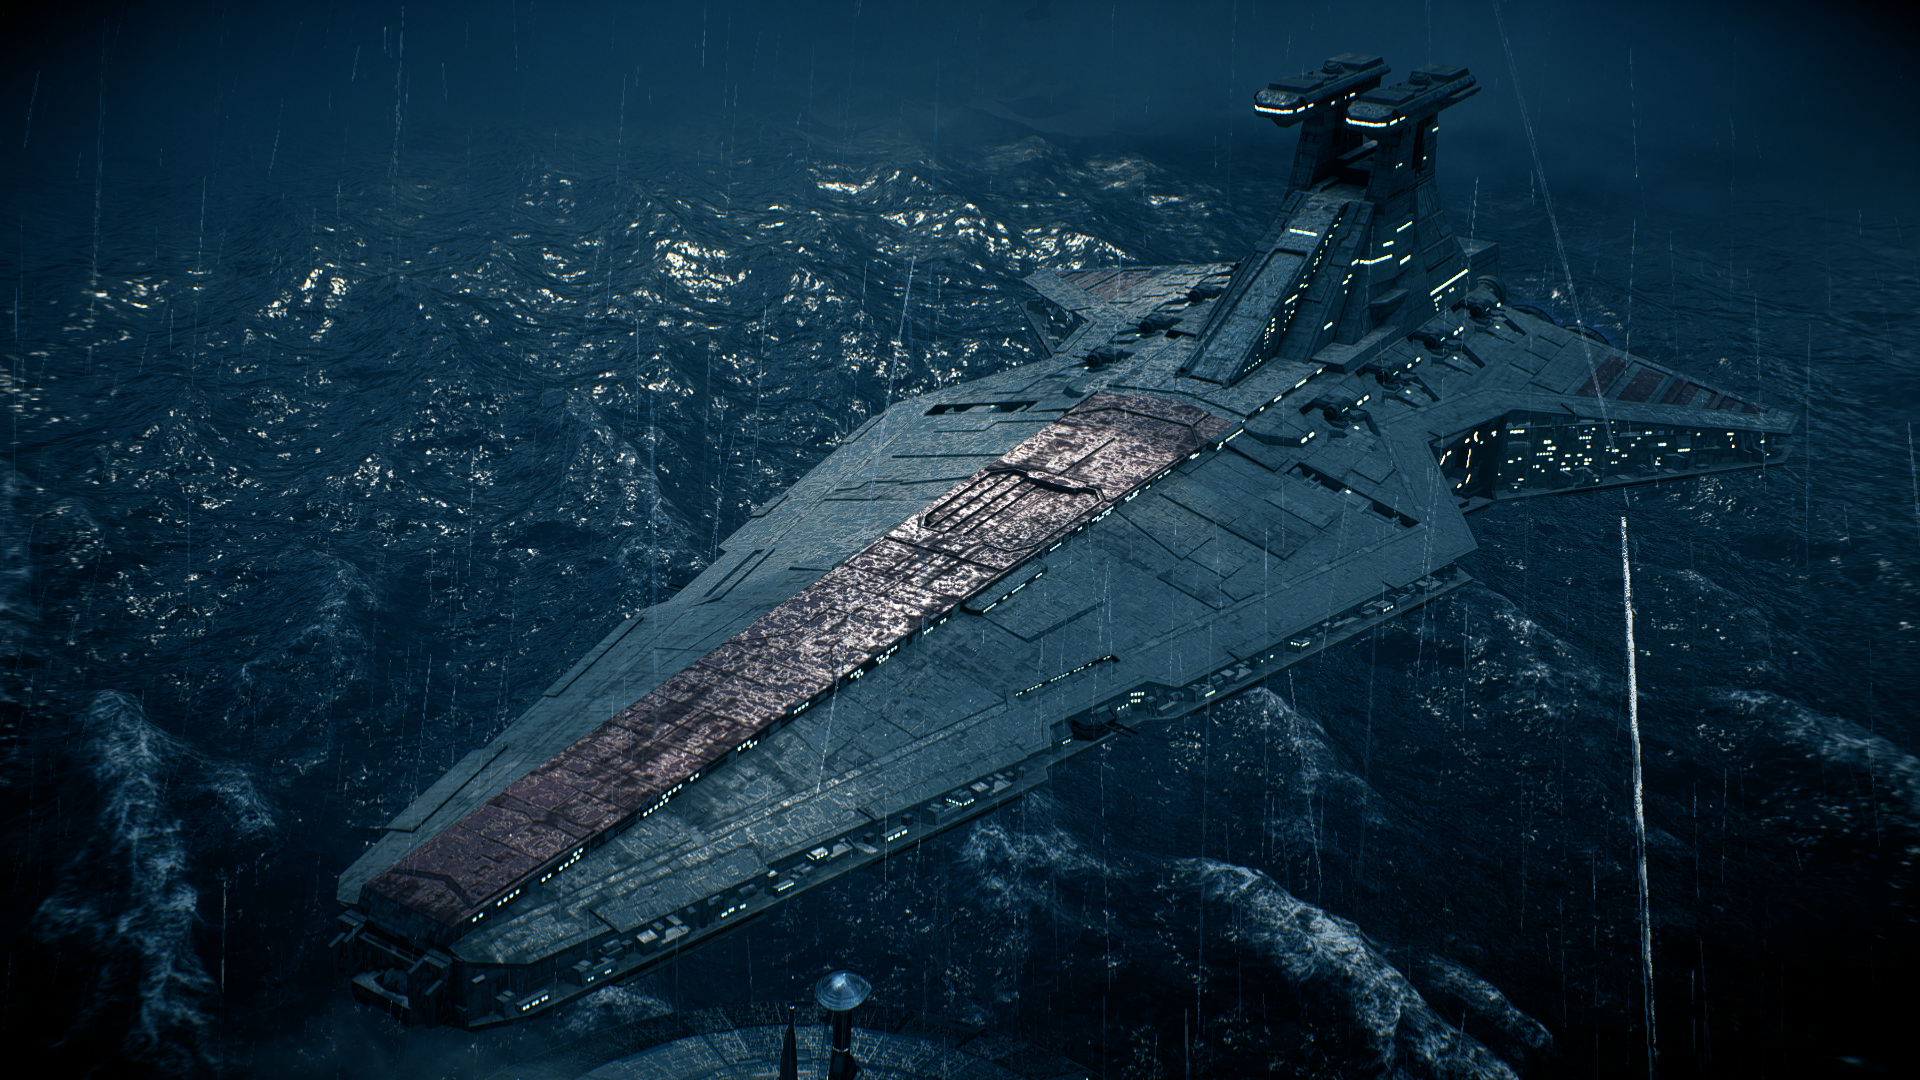 4 Venator Class Star Destroyer Hd Wallpapers Background Images Wallpaper Abyss